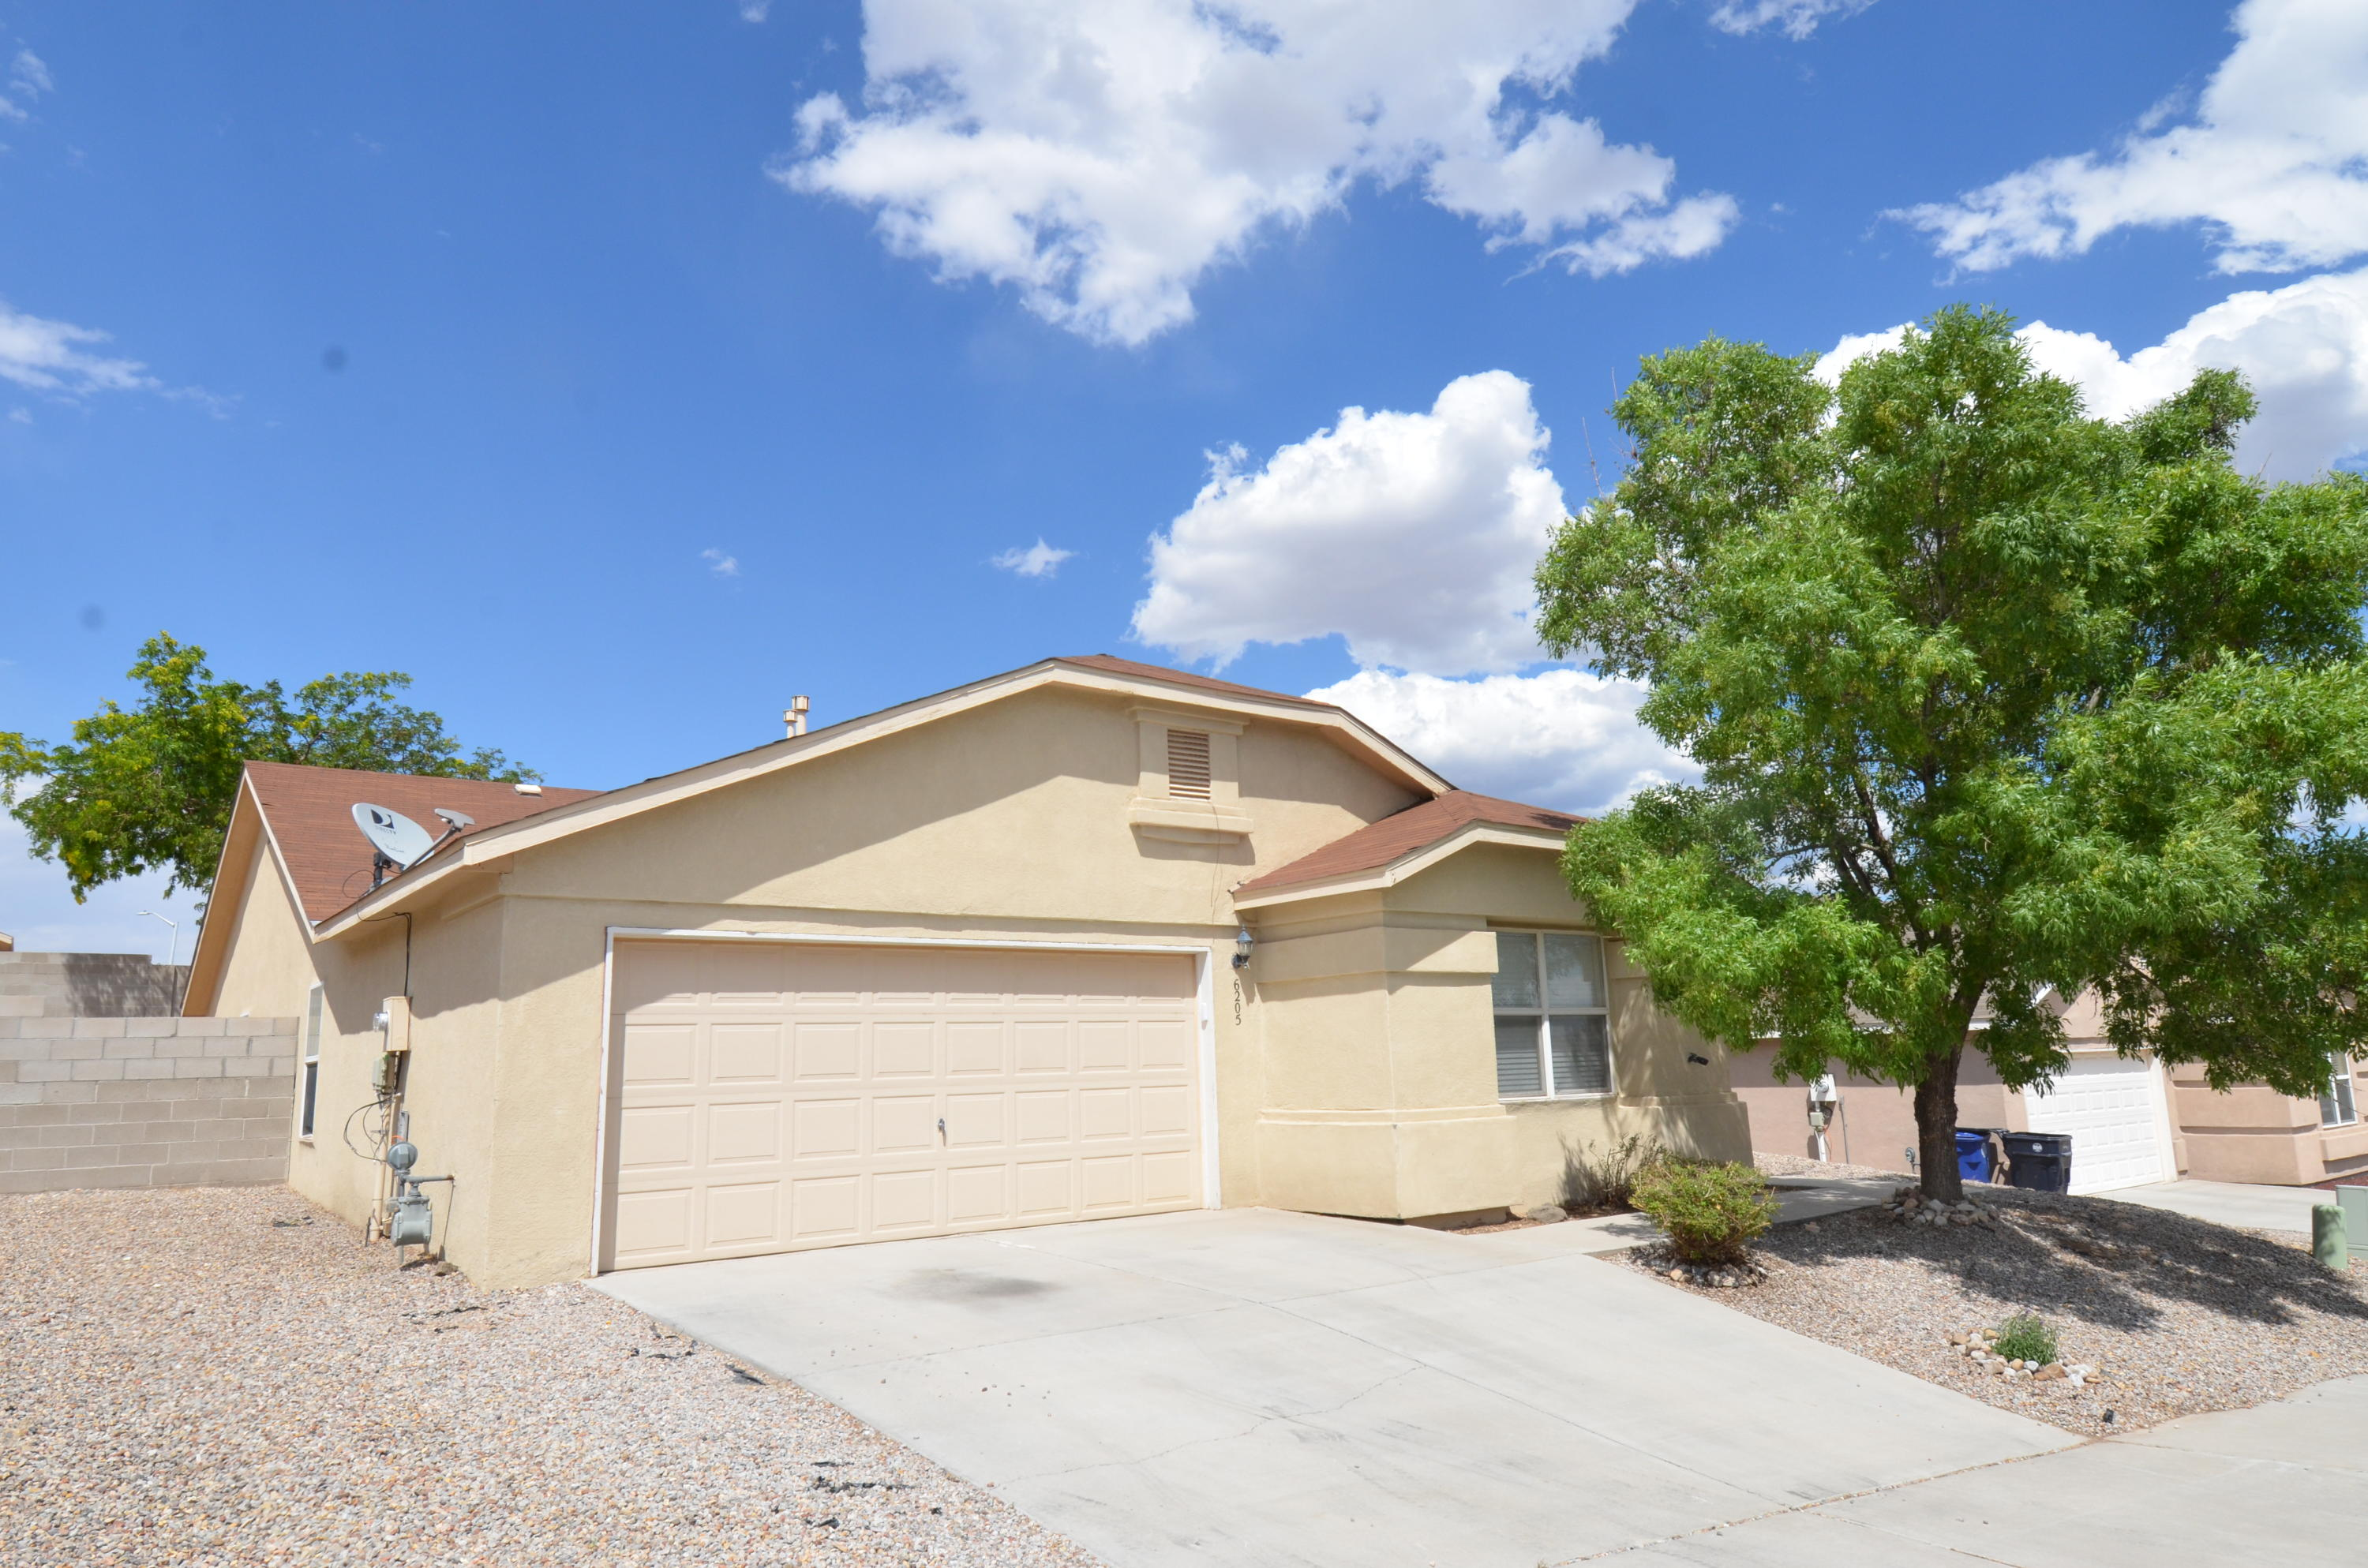 Don't miss this hard to find single story property in the beautiful neighborhood of Tuscany.  This quiet yet convenient location is within minutes of schools,  grocery stores, pharmacies, fitness centers, breweries, parks, &  restaurants.  The home features new carpet, blinds, toilets, light fixtures, microwave, fresh paint, refurbished countertops,  and even a new kitchen sink. The home stays cool with the Mastercool evaporative cooler, and don't miss the mountain views from the back yard or the extra large closet in the master bedroom!